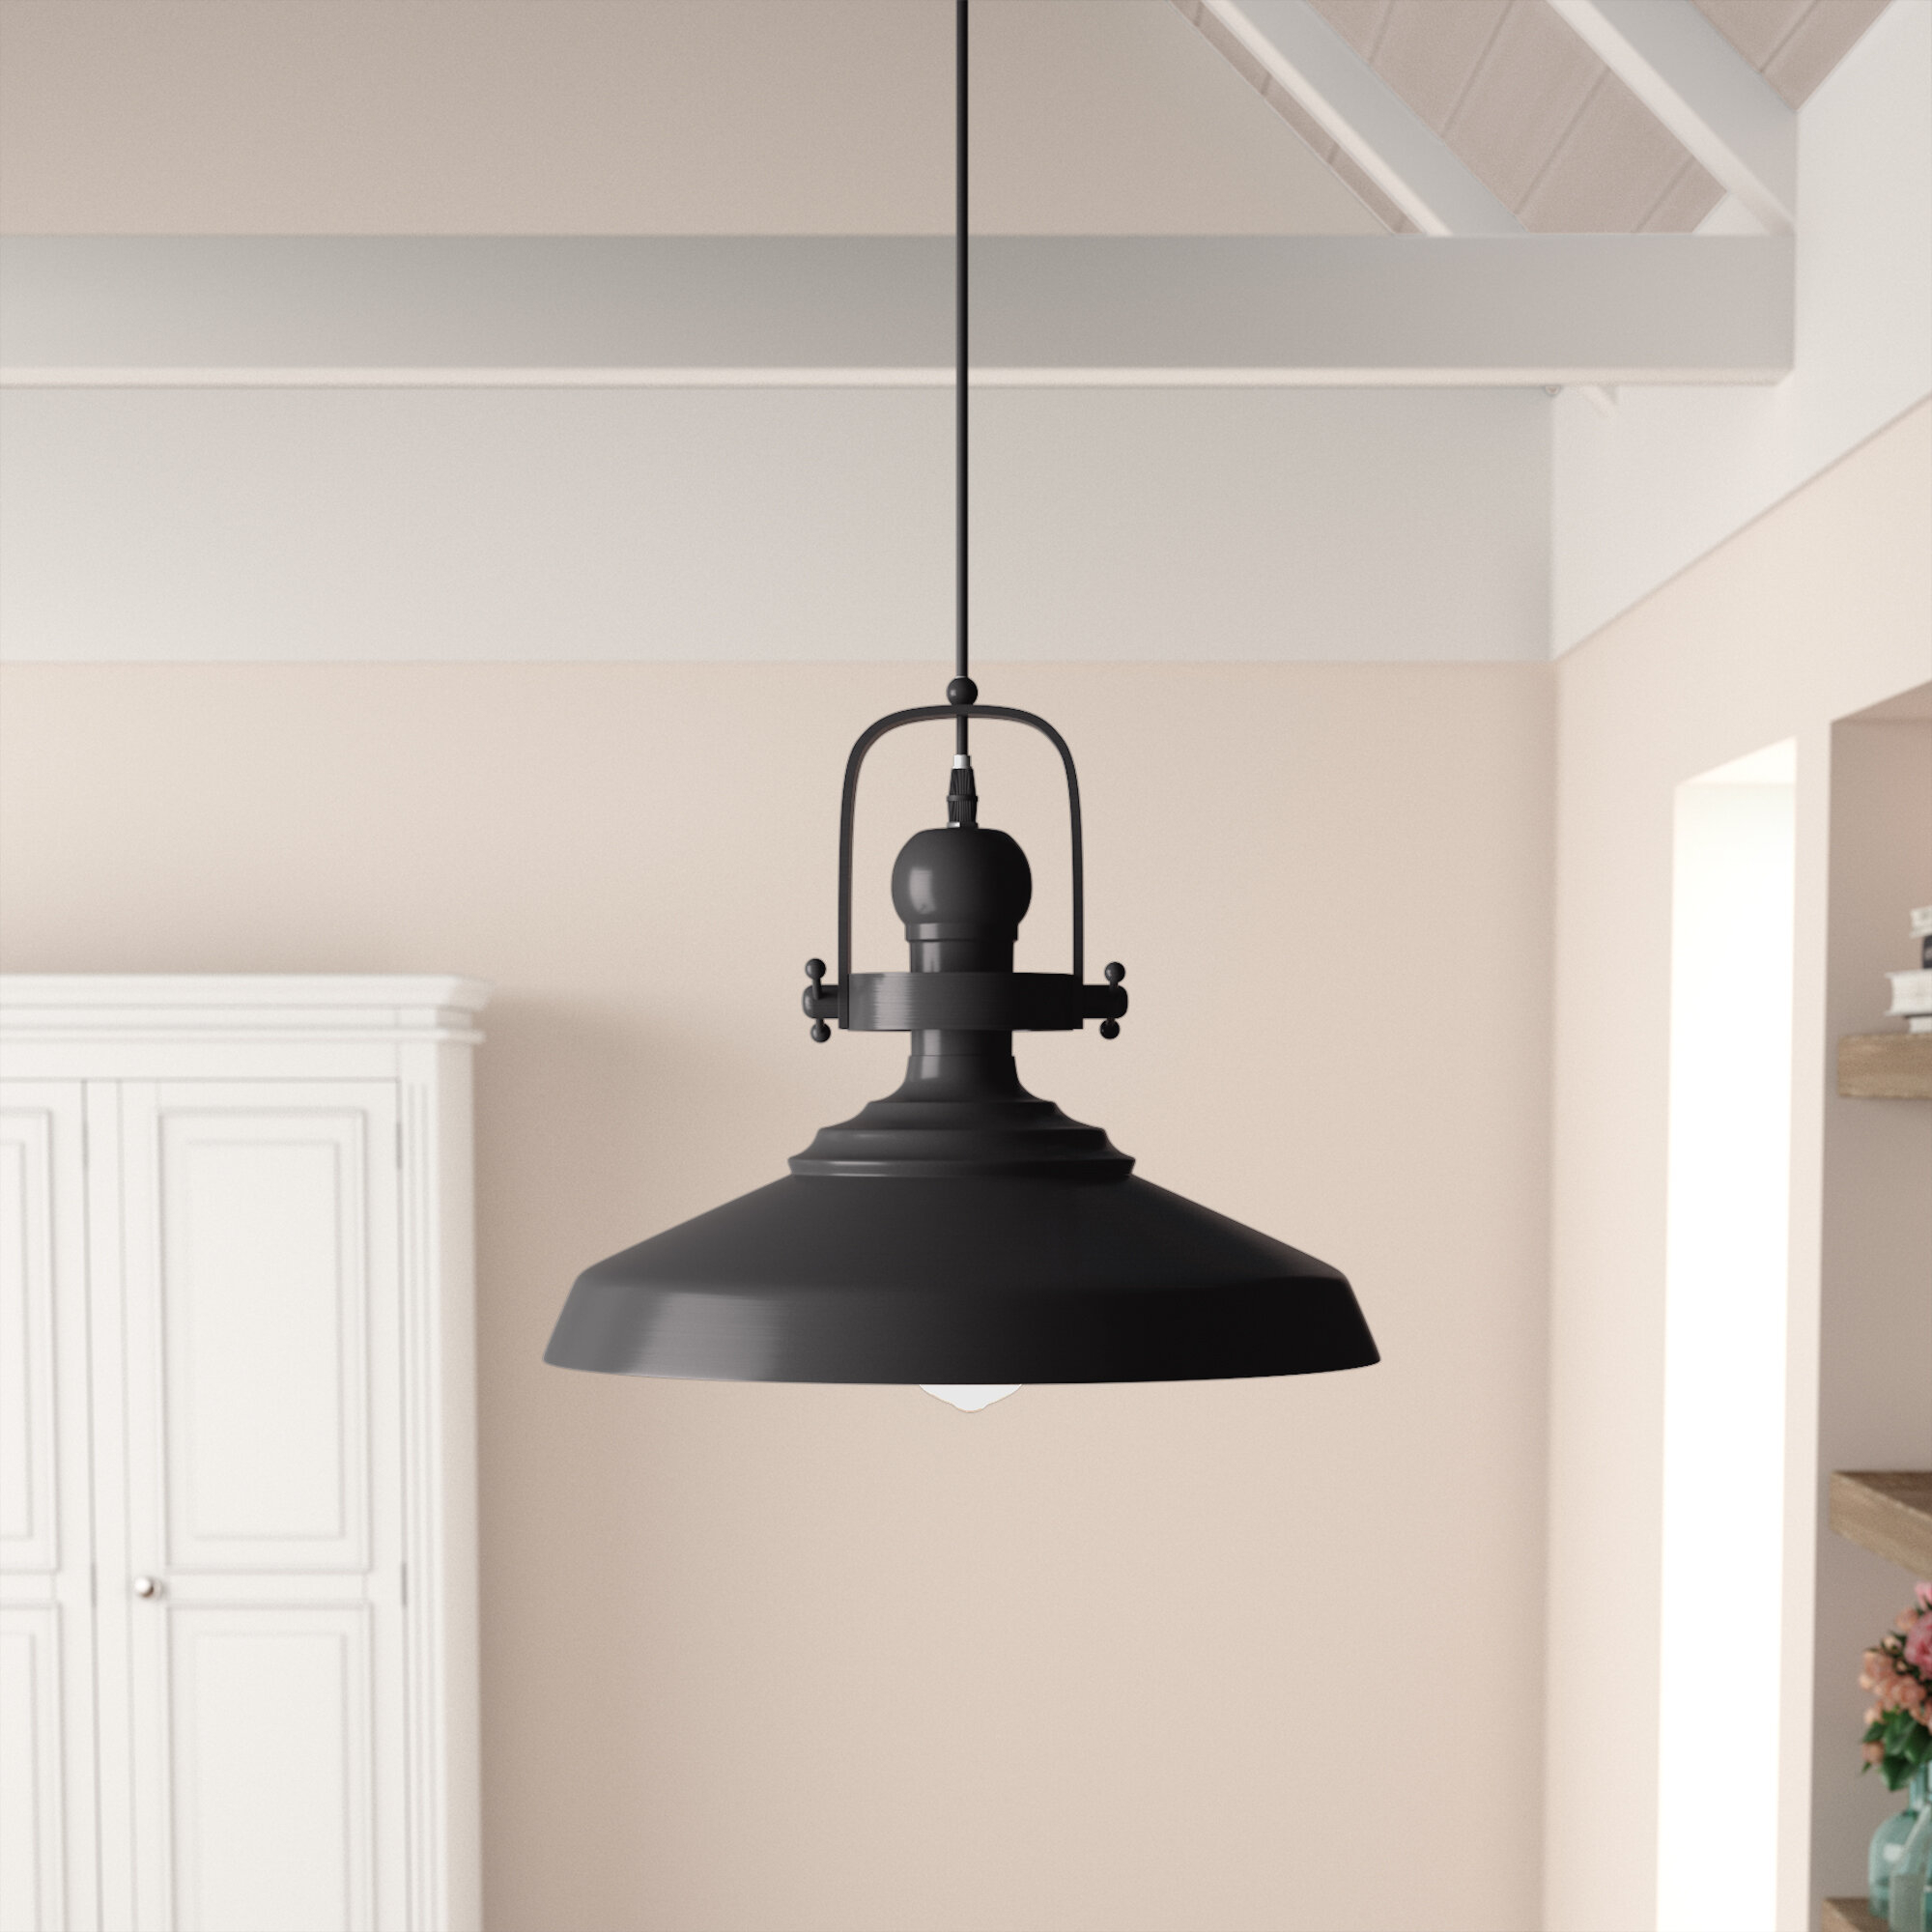 Estelle 1 Light Single Dome Pendant Within 1 Light Single Dome Pendants (Gallery 23 of 30)